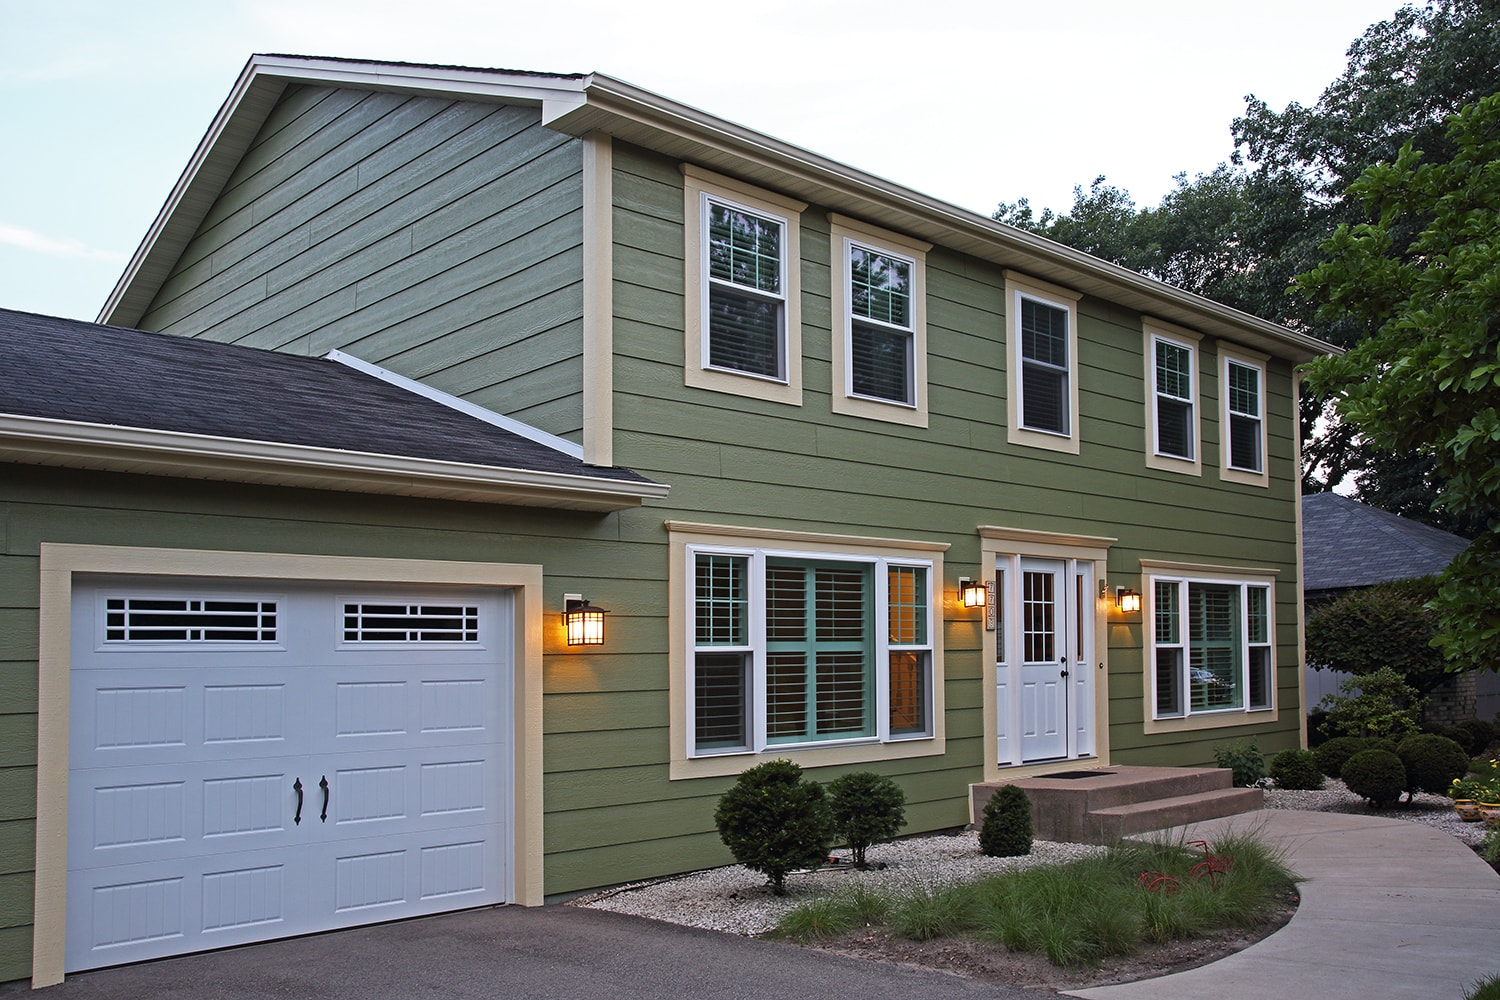 Siding That's Beautiful, Durable, Low-Maintenance and Green